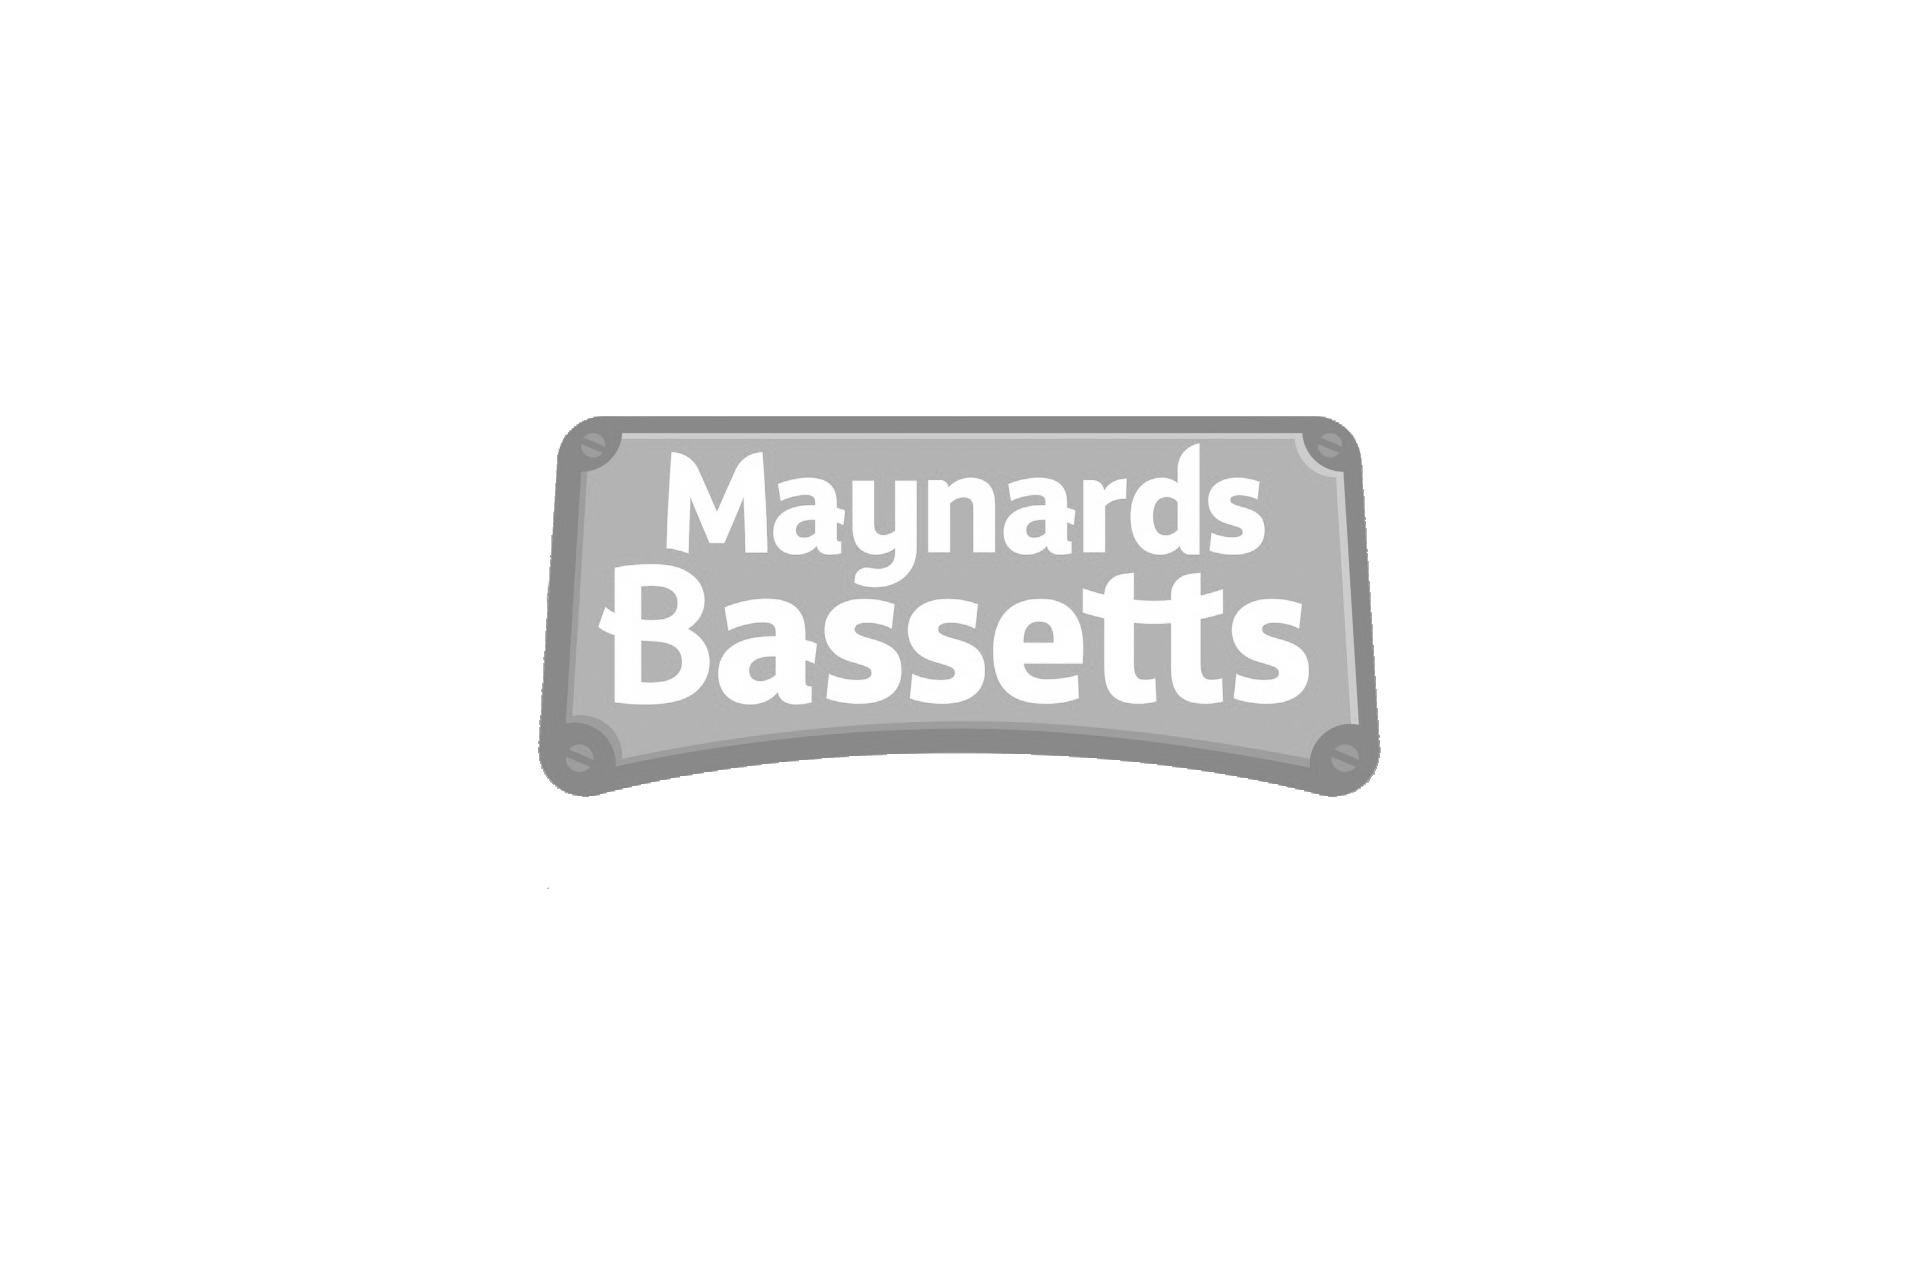 maynards bassetts grey